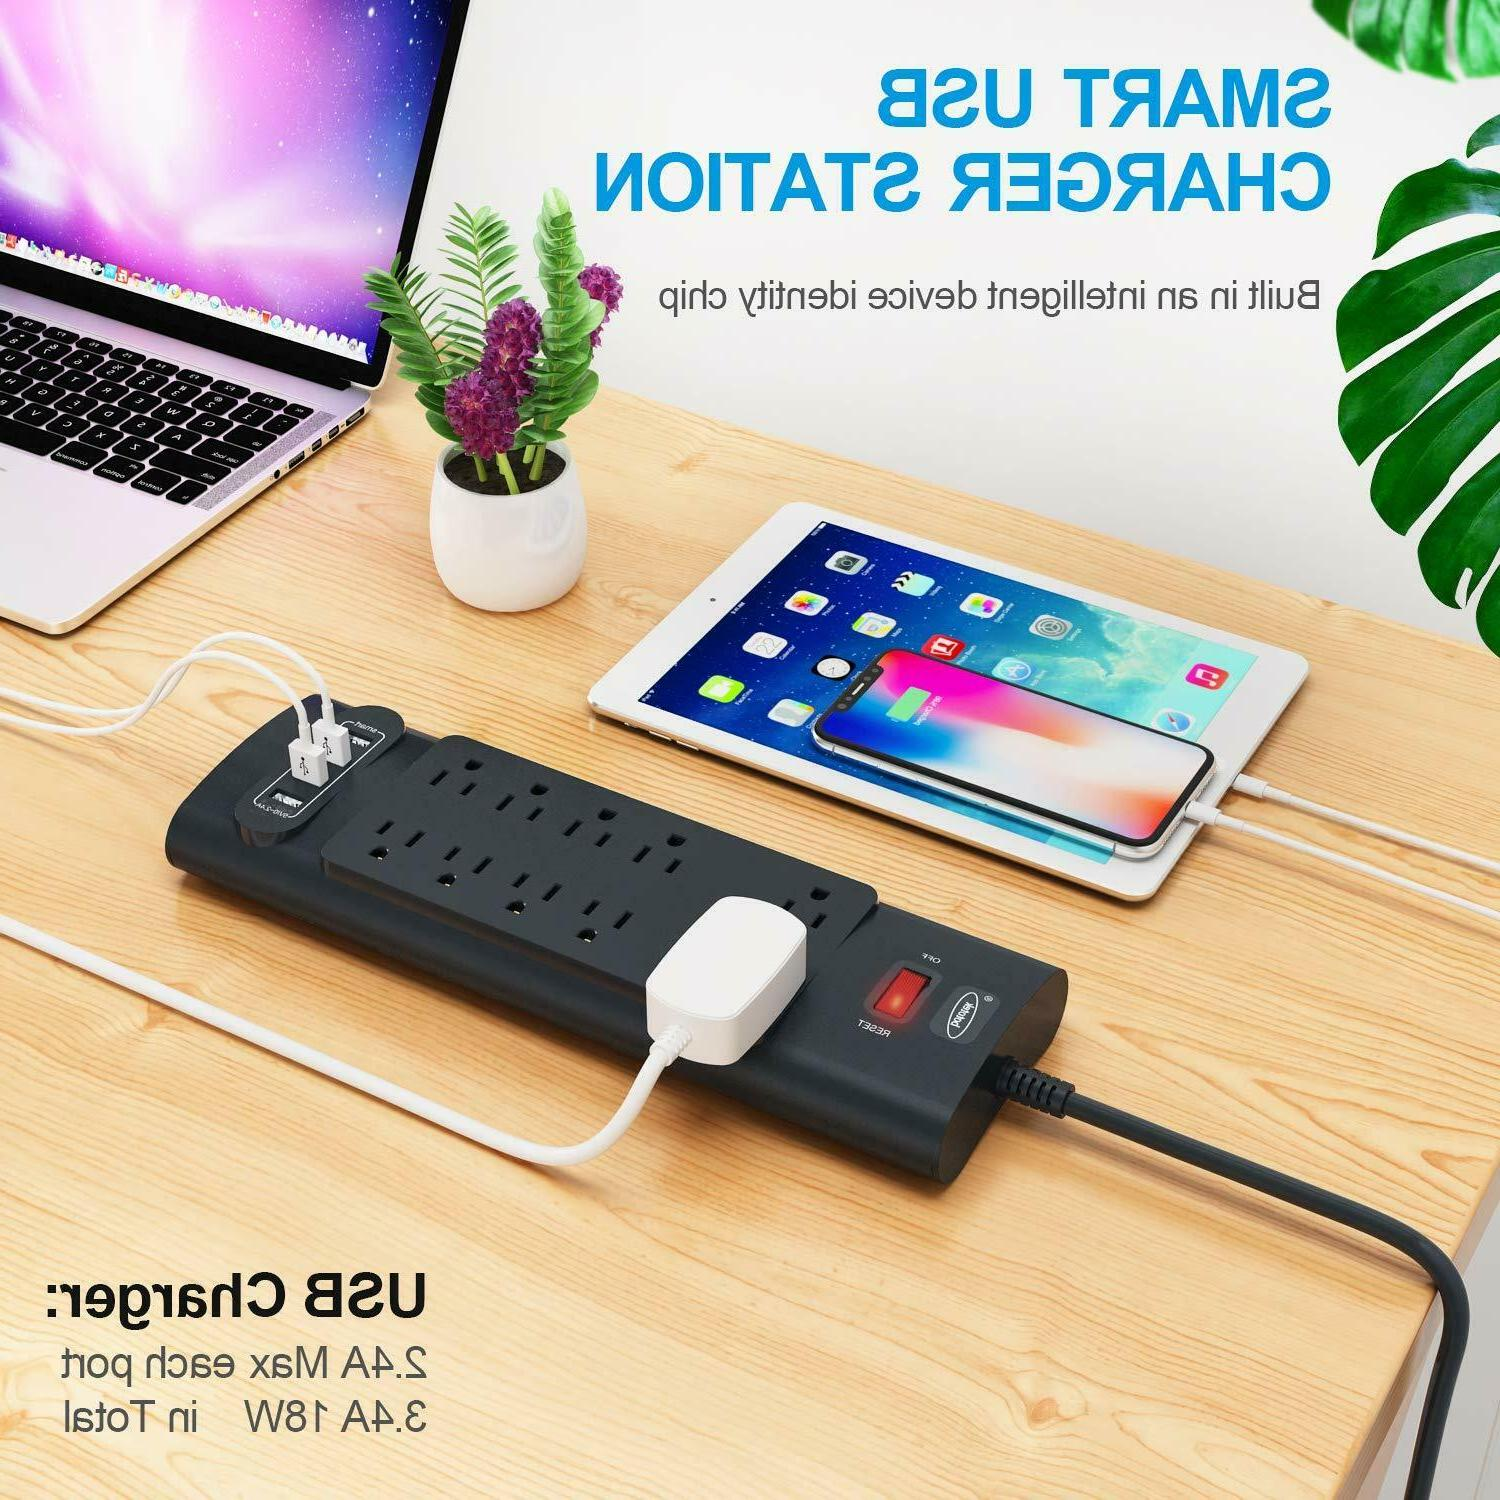 Power Surge Protector Outlets and 4 Charging Ports